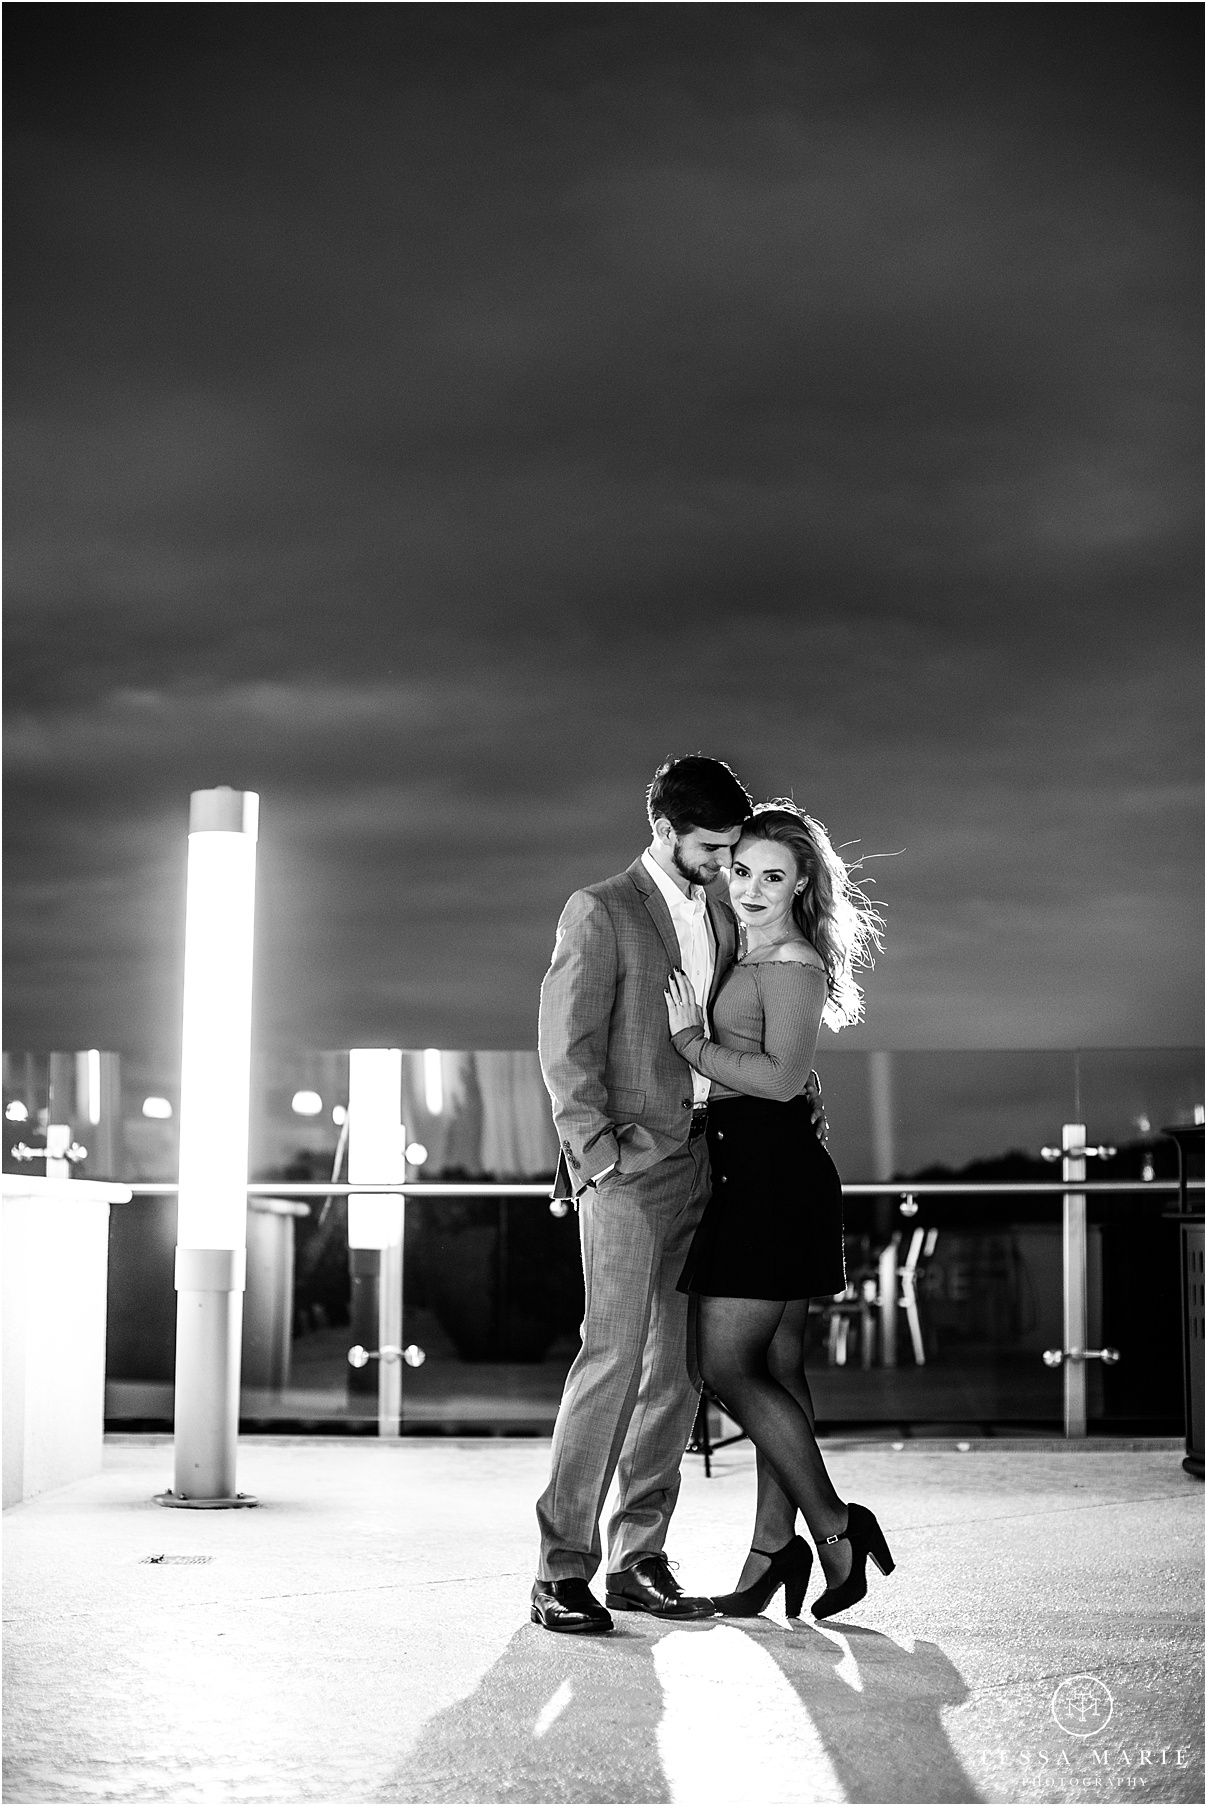 Tessa_marie_photography_wedding_photographer_engagement_pictures_river_engagement_0024.jpg